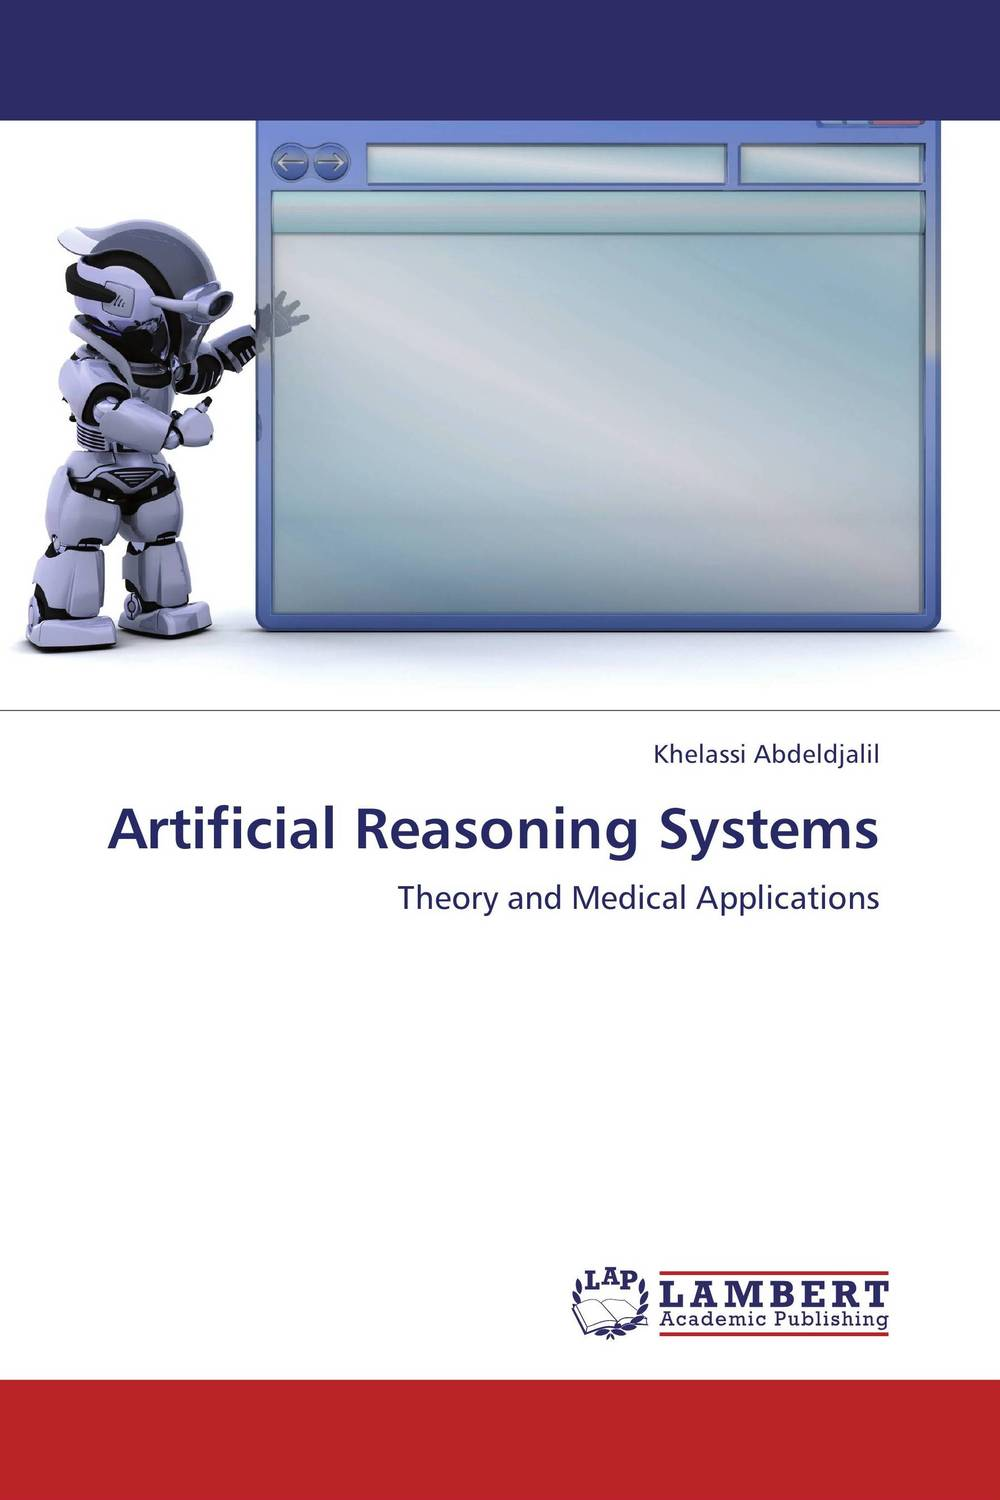 Artificial Reasoning Systems смартфоны digma смартфон g500 3g vox чёрный